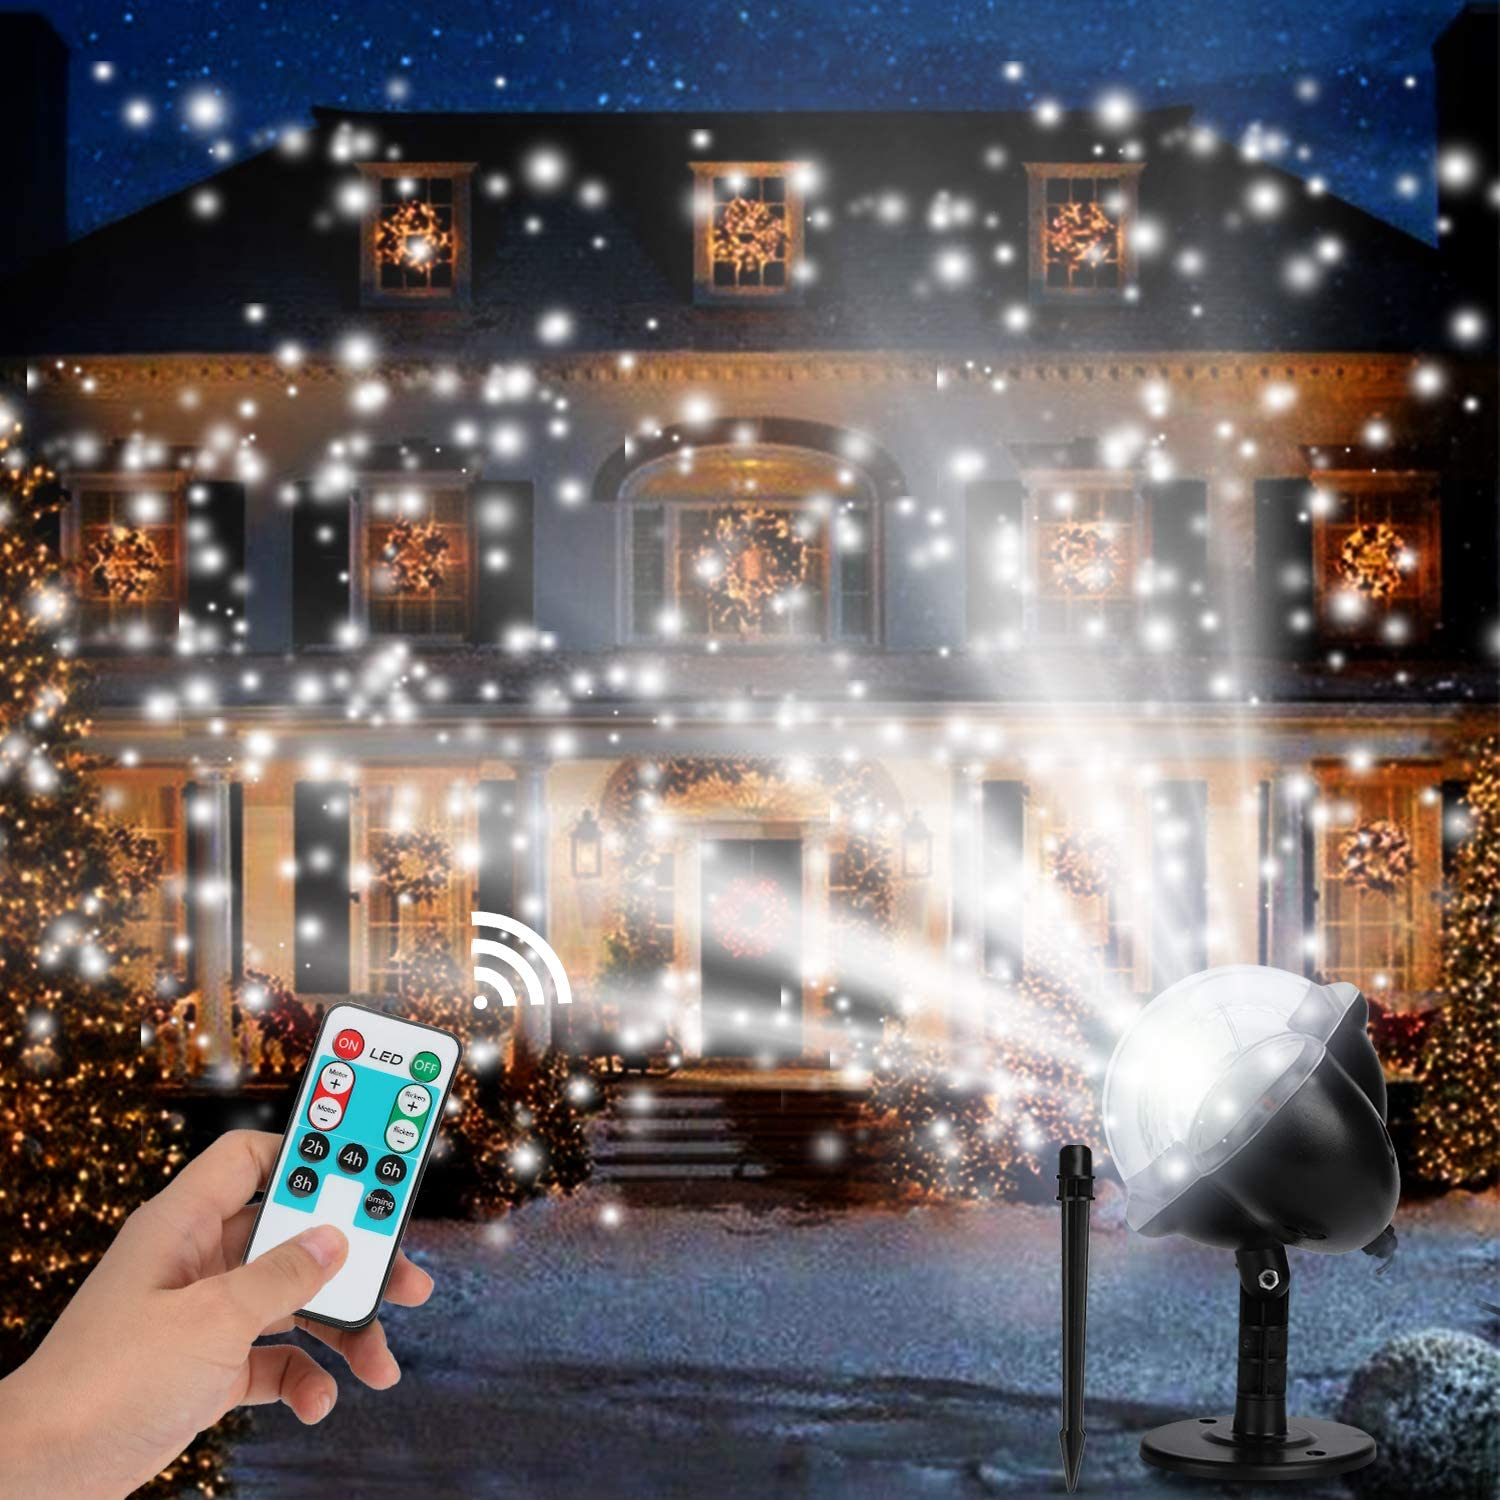 MUCH Christmas Projector Lights,Waterproof Decorative Lighting Projectors with RF Remote Control Snowfall Lamp,Outdoor Indoor Decor LED Snowflakes Projection Light for Birthday Party,Garden Xmas Yard